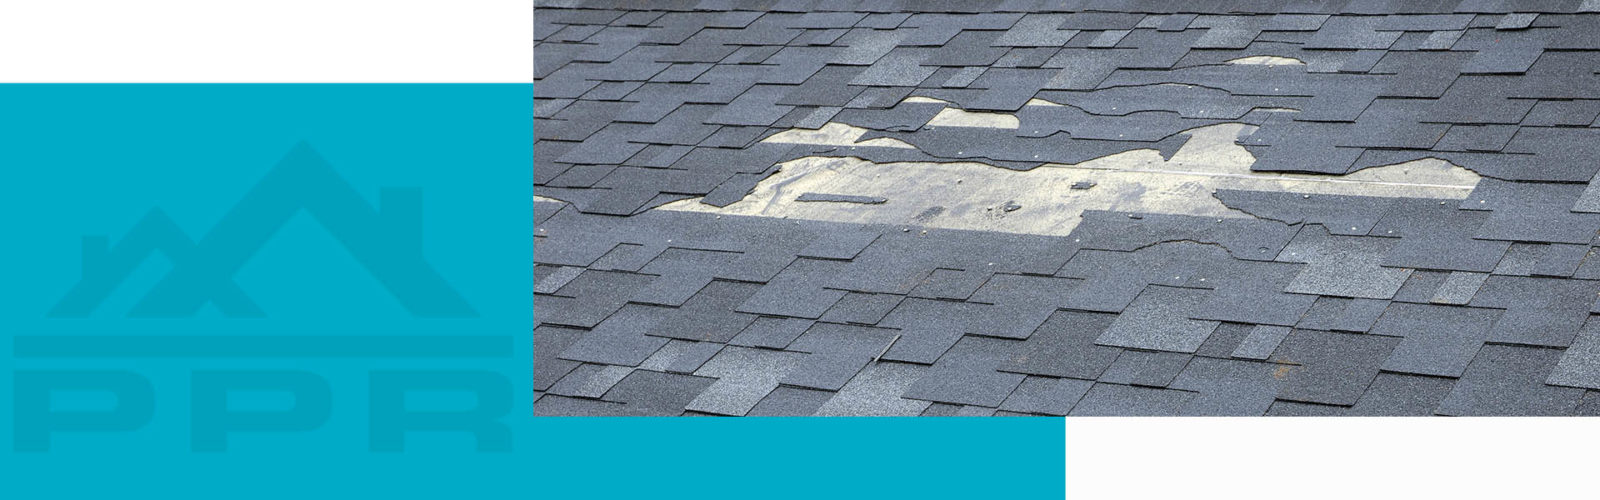 Roof Repair - Property Pros Roofing